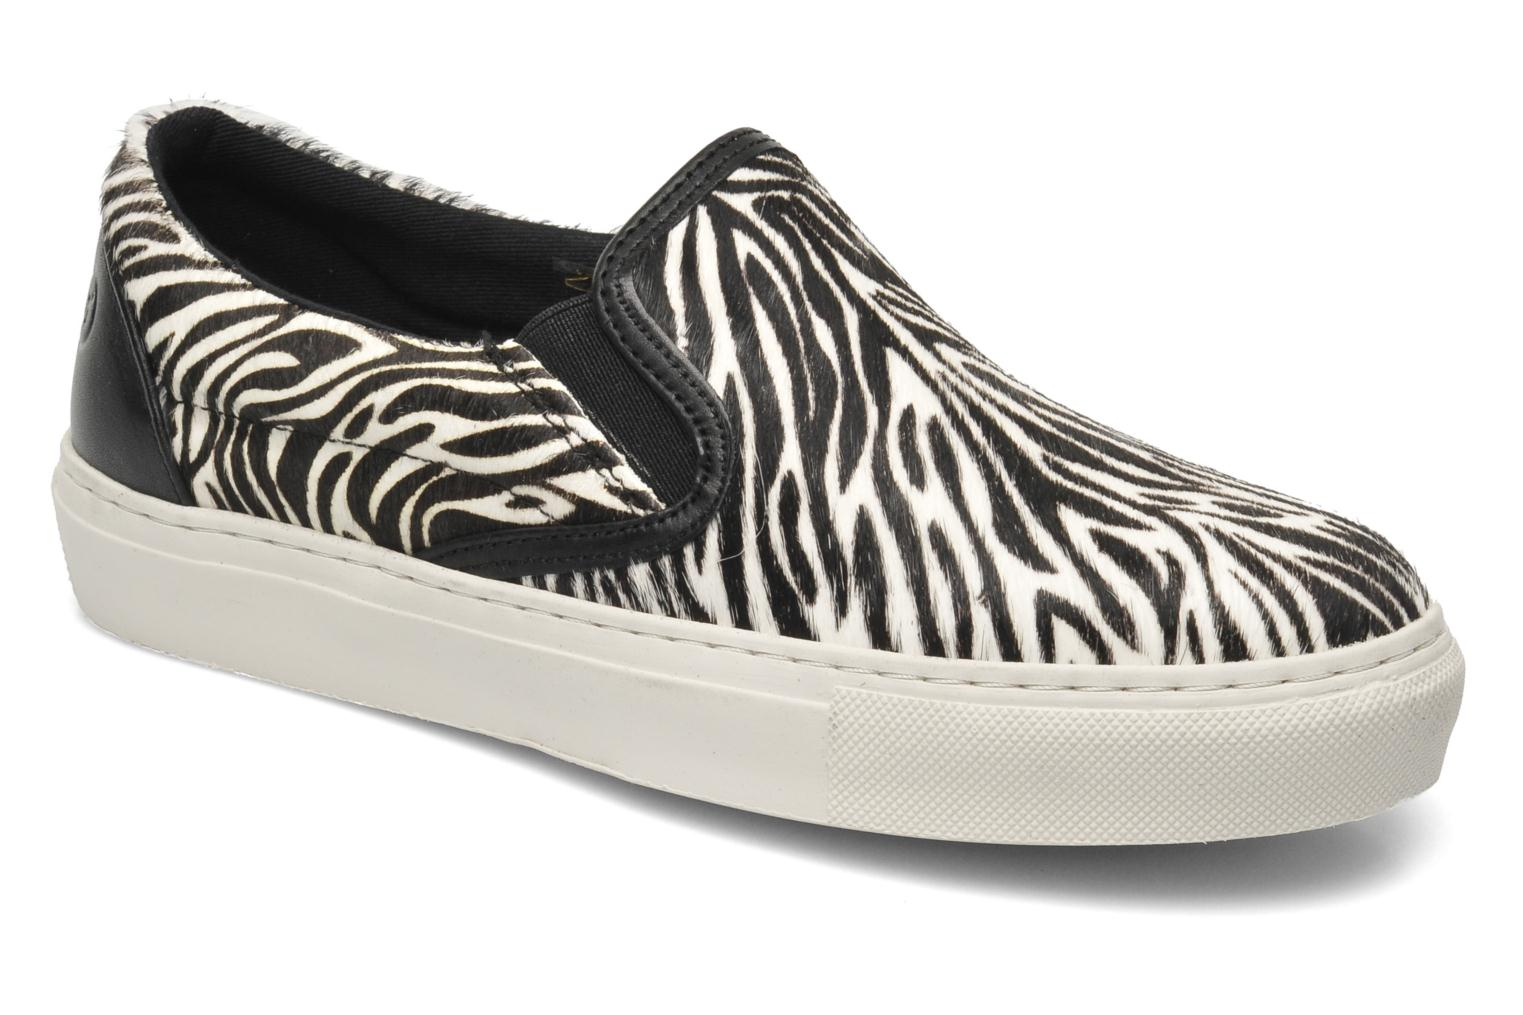 Sneakers Pony/nappa by Bronx